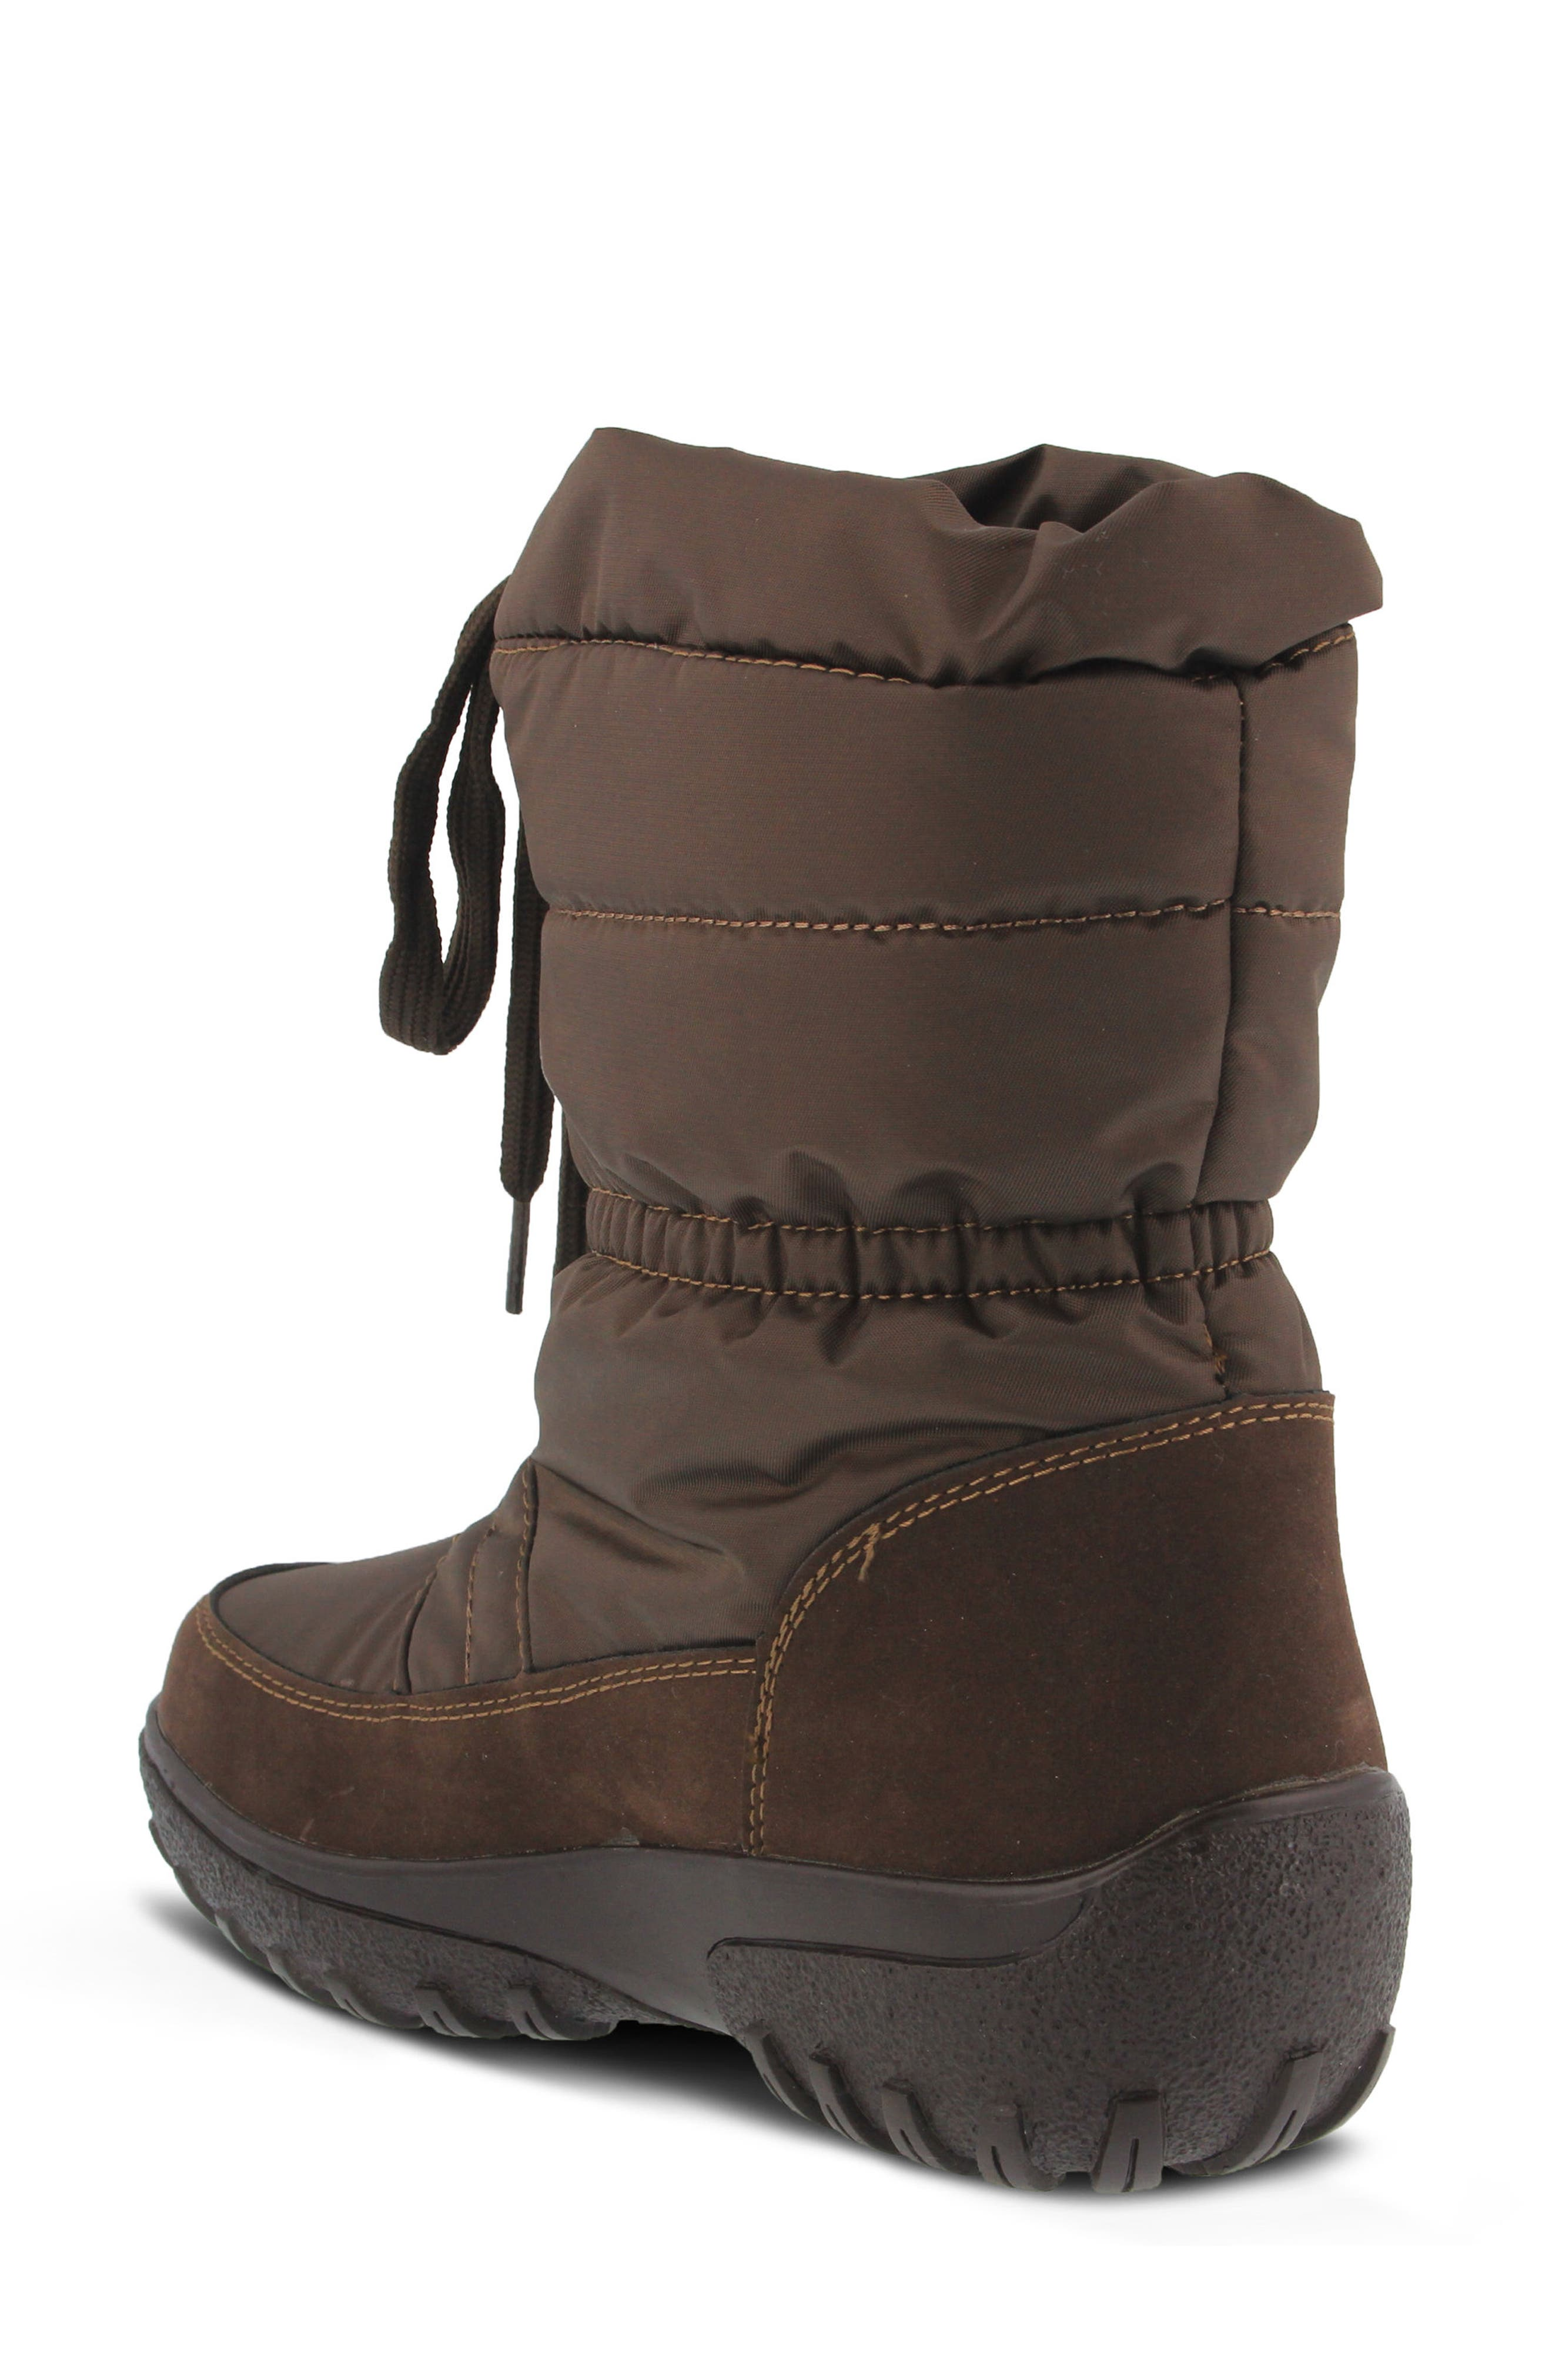 Alternate Image 2  - Spring Step Lucerne Waterproof Drawstring Boot (Women)